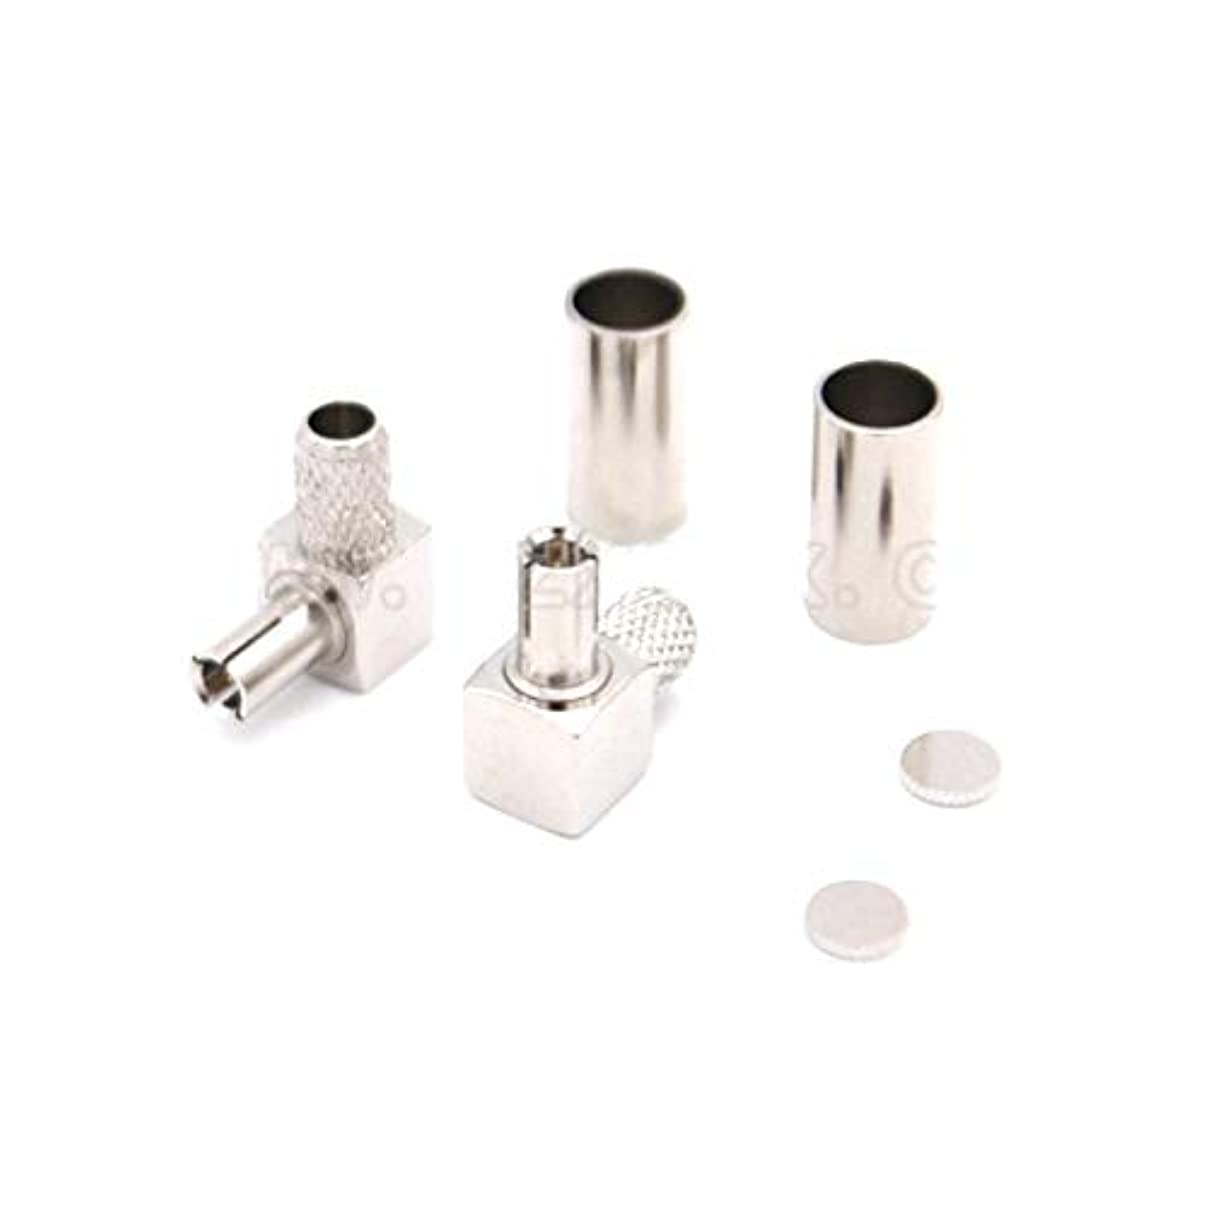 Rf coaxial Connector TS9 Crimp for RG58 RG142 LMR195 RG223 Cable Huawei/ZTE 3G/4G Modem Antenna Connector